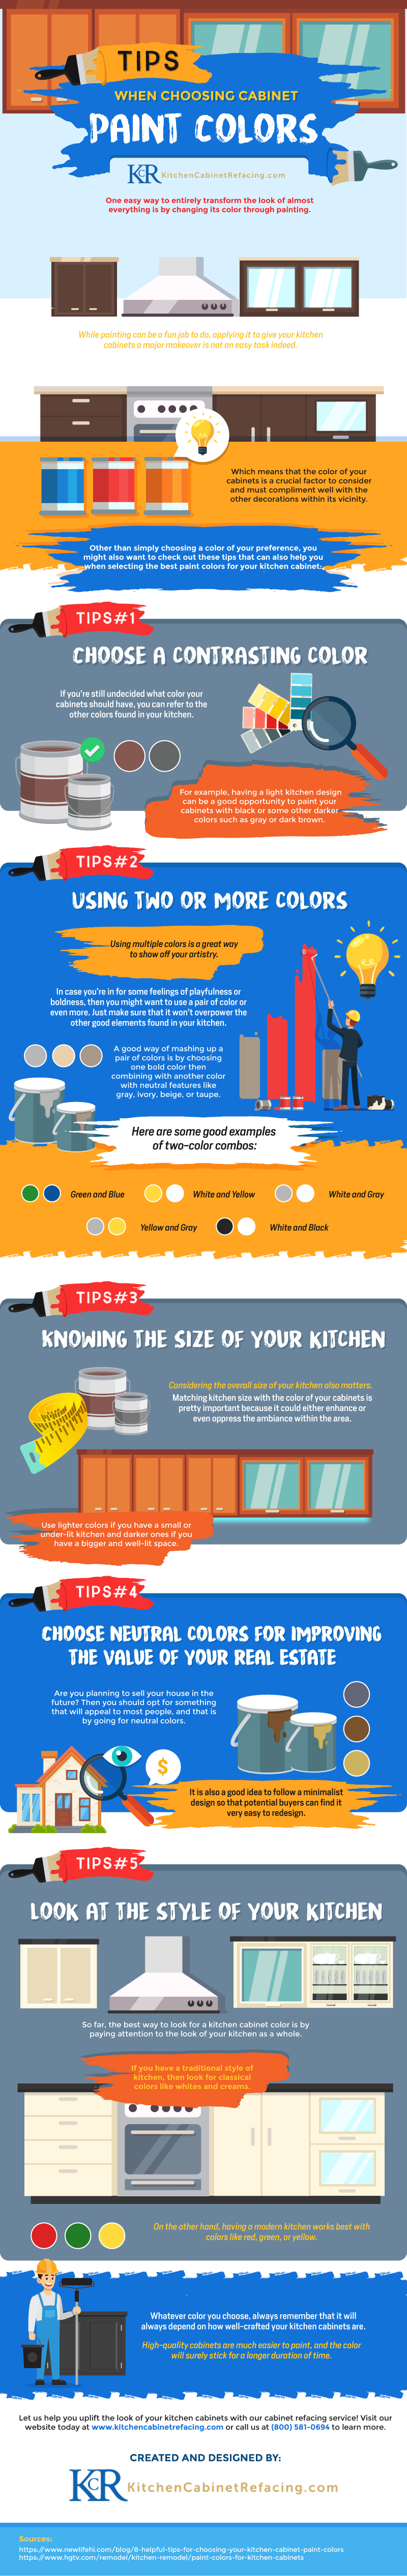 Tips When Choosing Cabinet Paint Colors - Infographic